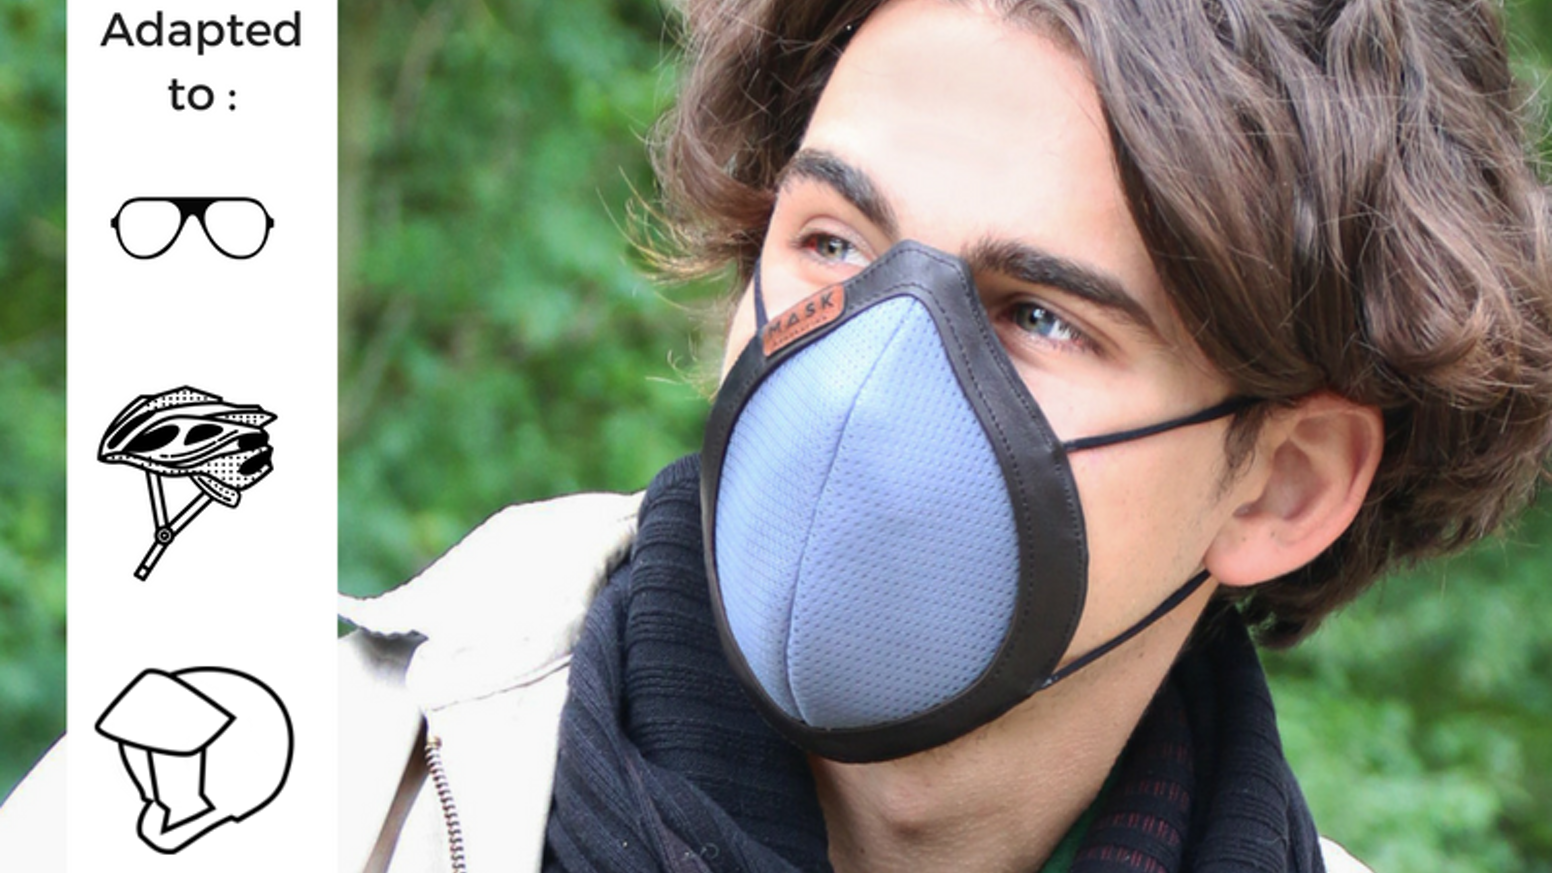 Fashionable protective gear for children and adults - pollution, virus, pollen, bacteria - made with love from France.